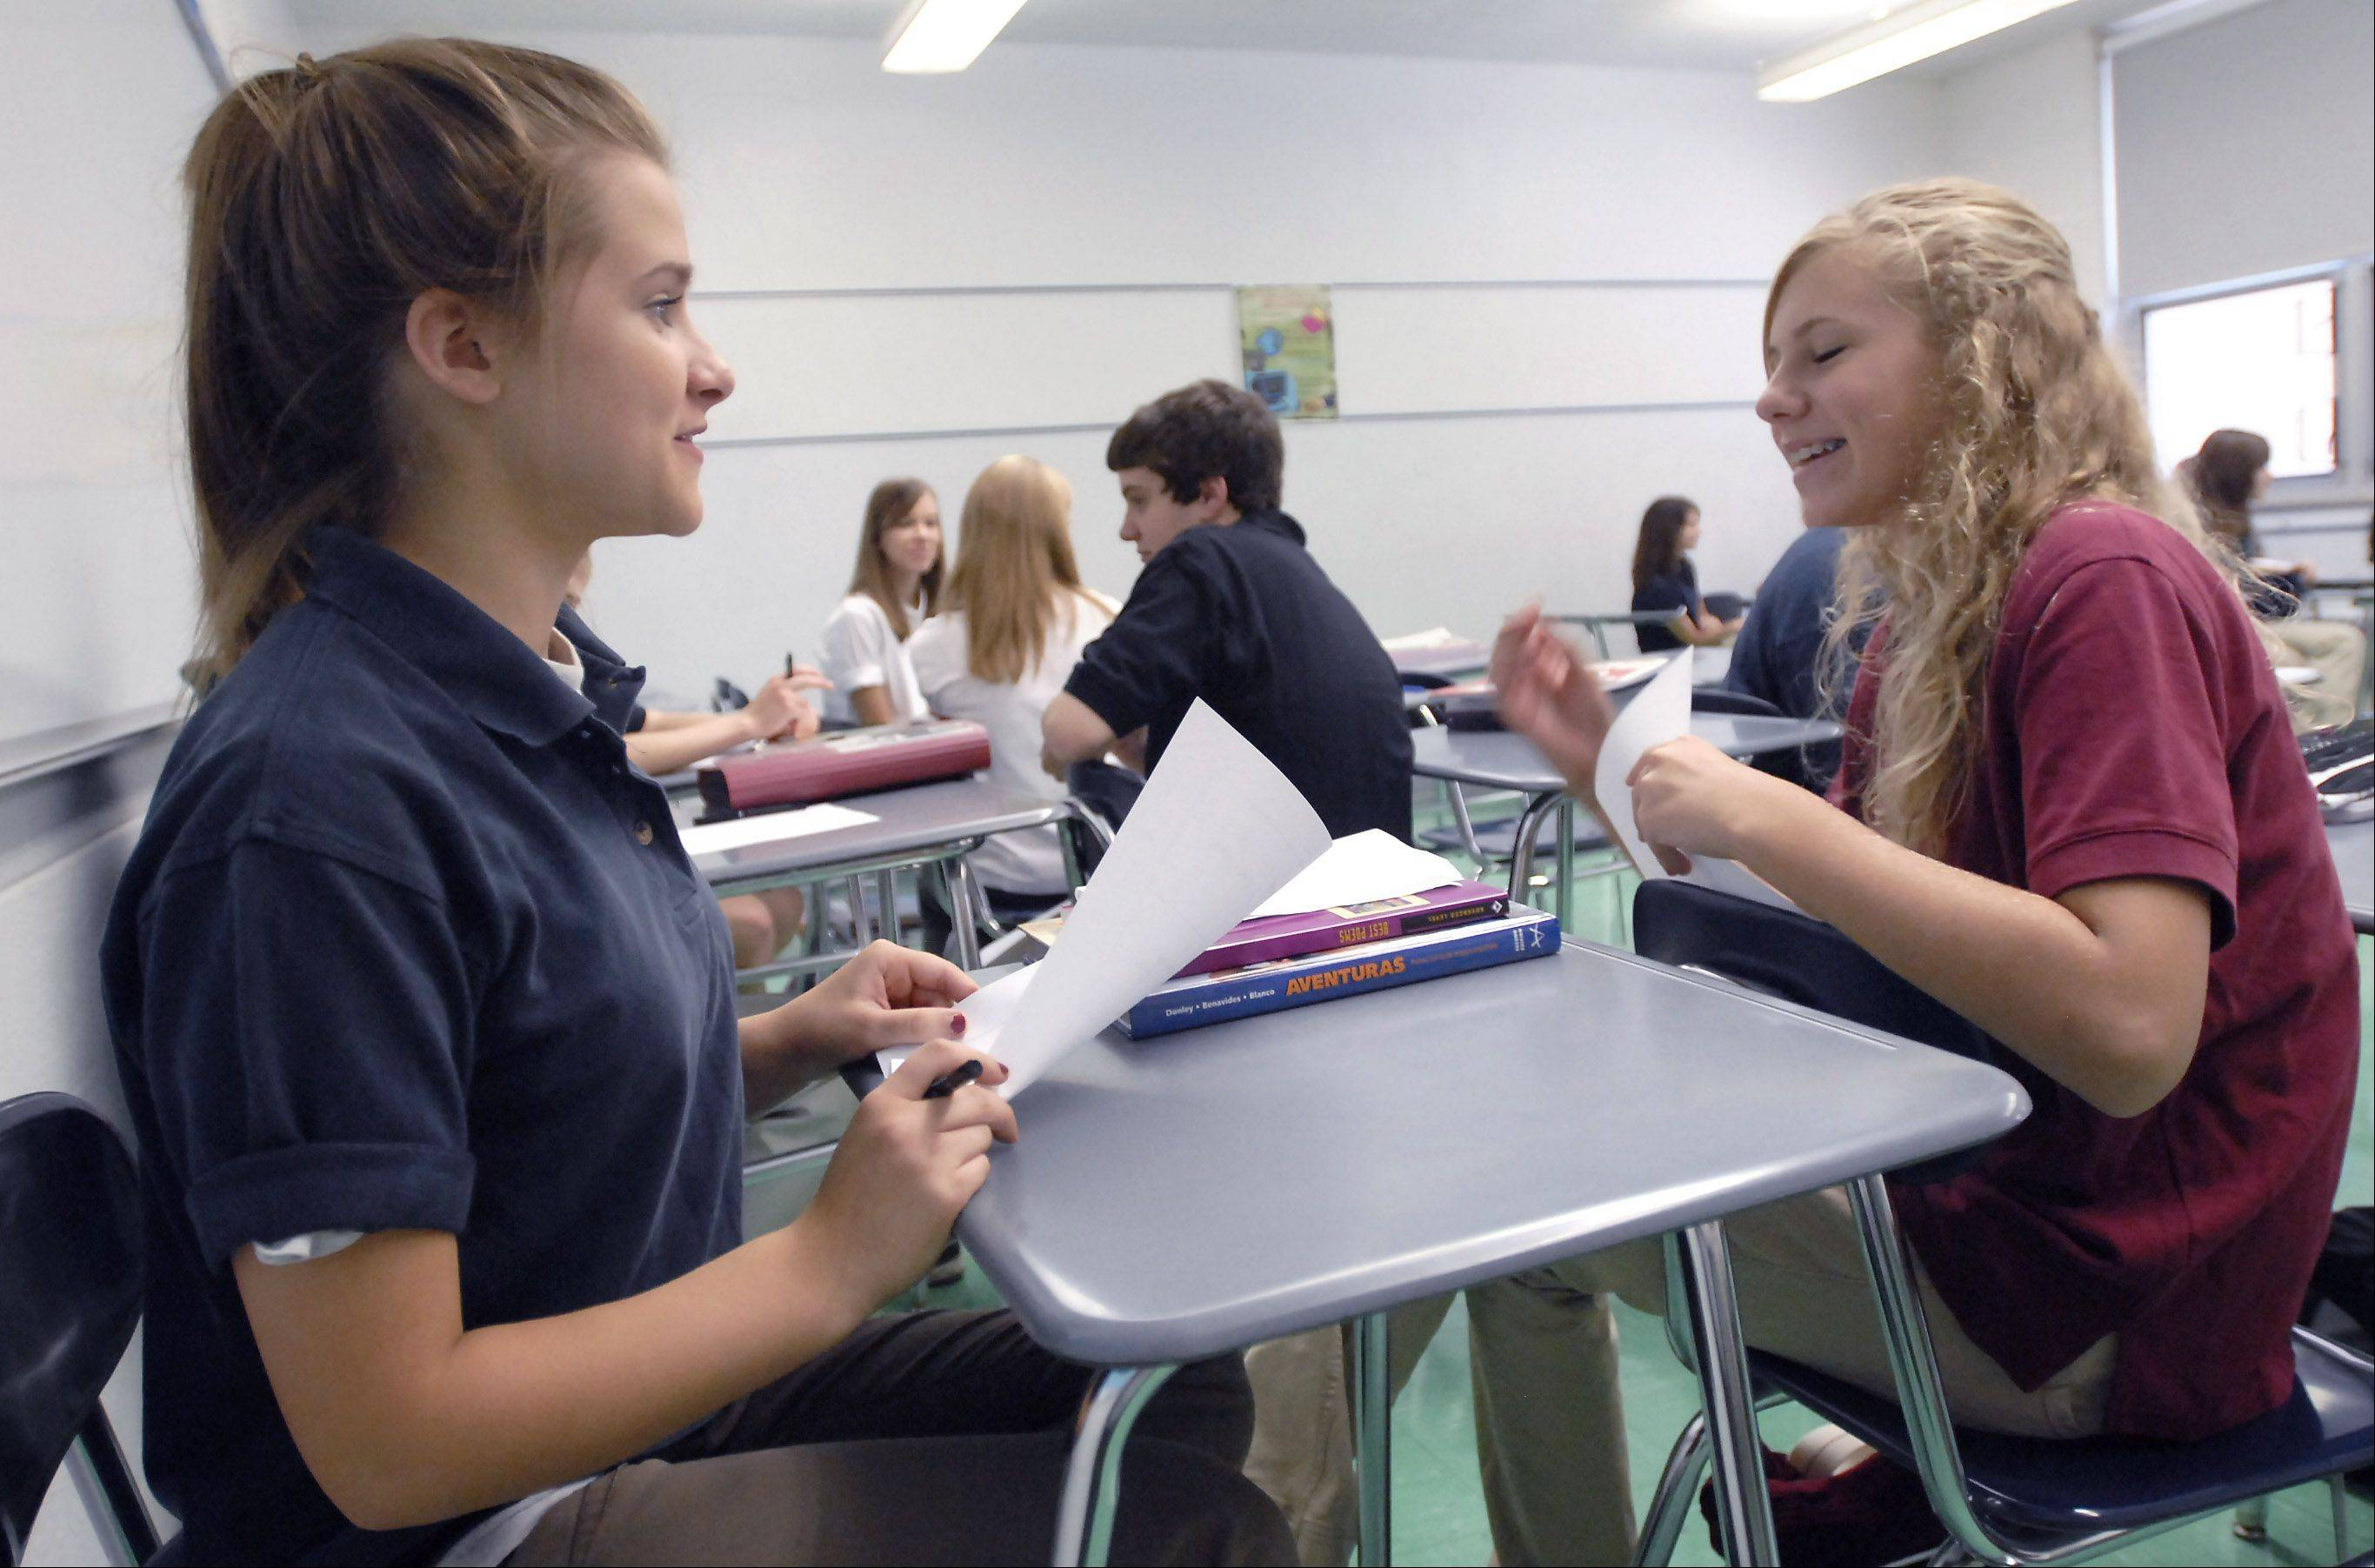 St. Viator freshman Brooke Bonk of Des Plaines and Emily Benas of Rolling Meadows trade life stories in a minute during Honors English class on the first day of school at St. Viator High School in Arlington Heights in 2006. This school year, the school will will start randomly testing all studentsl for alcohol consumption.